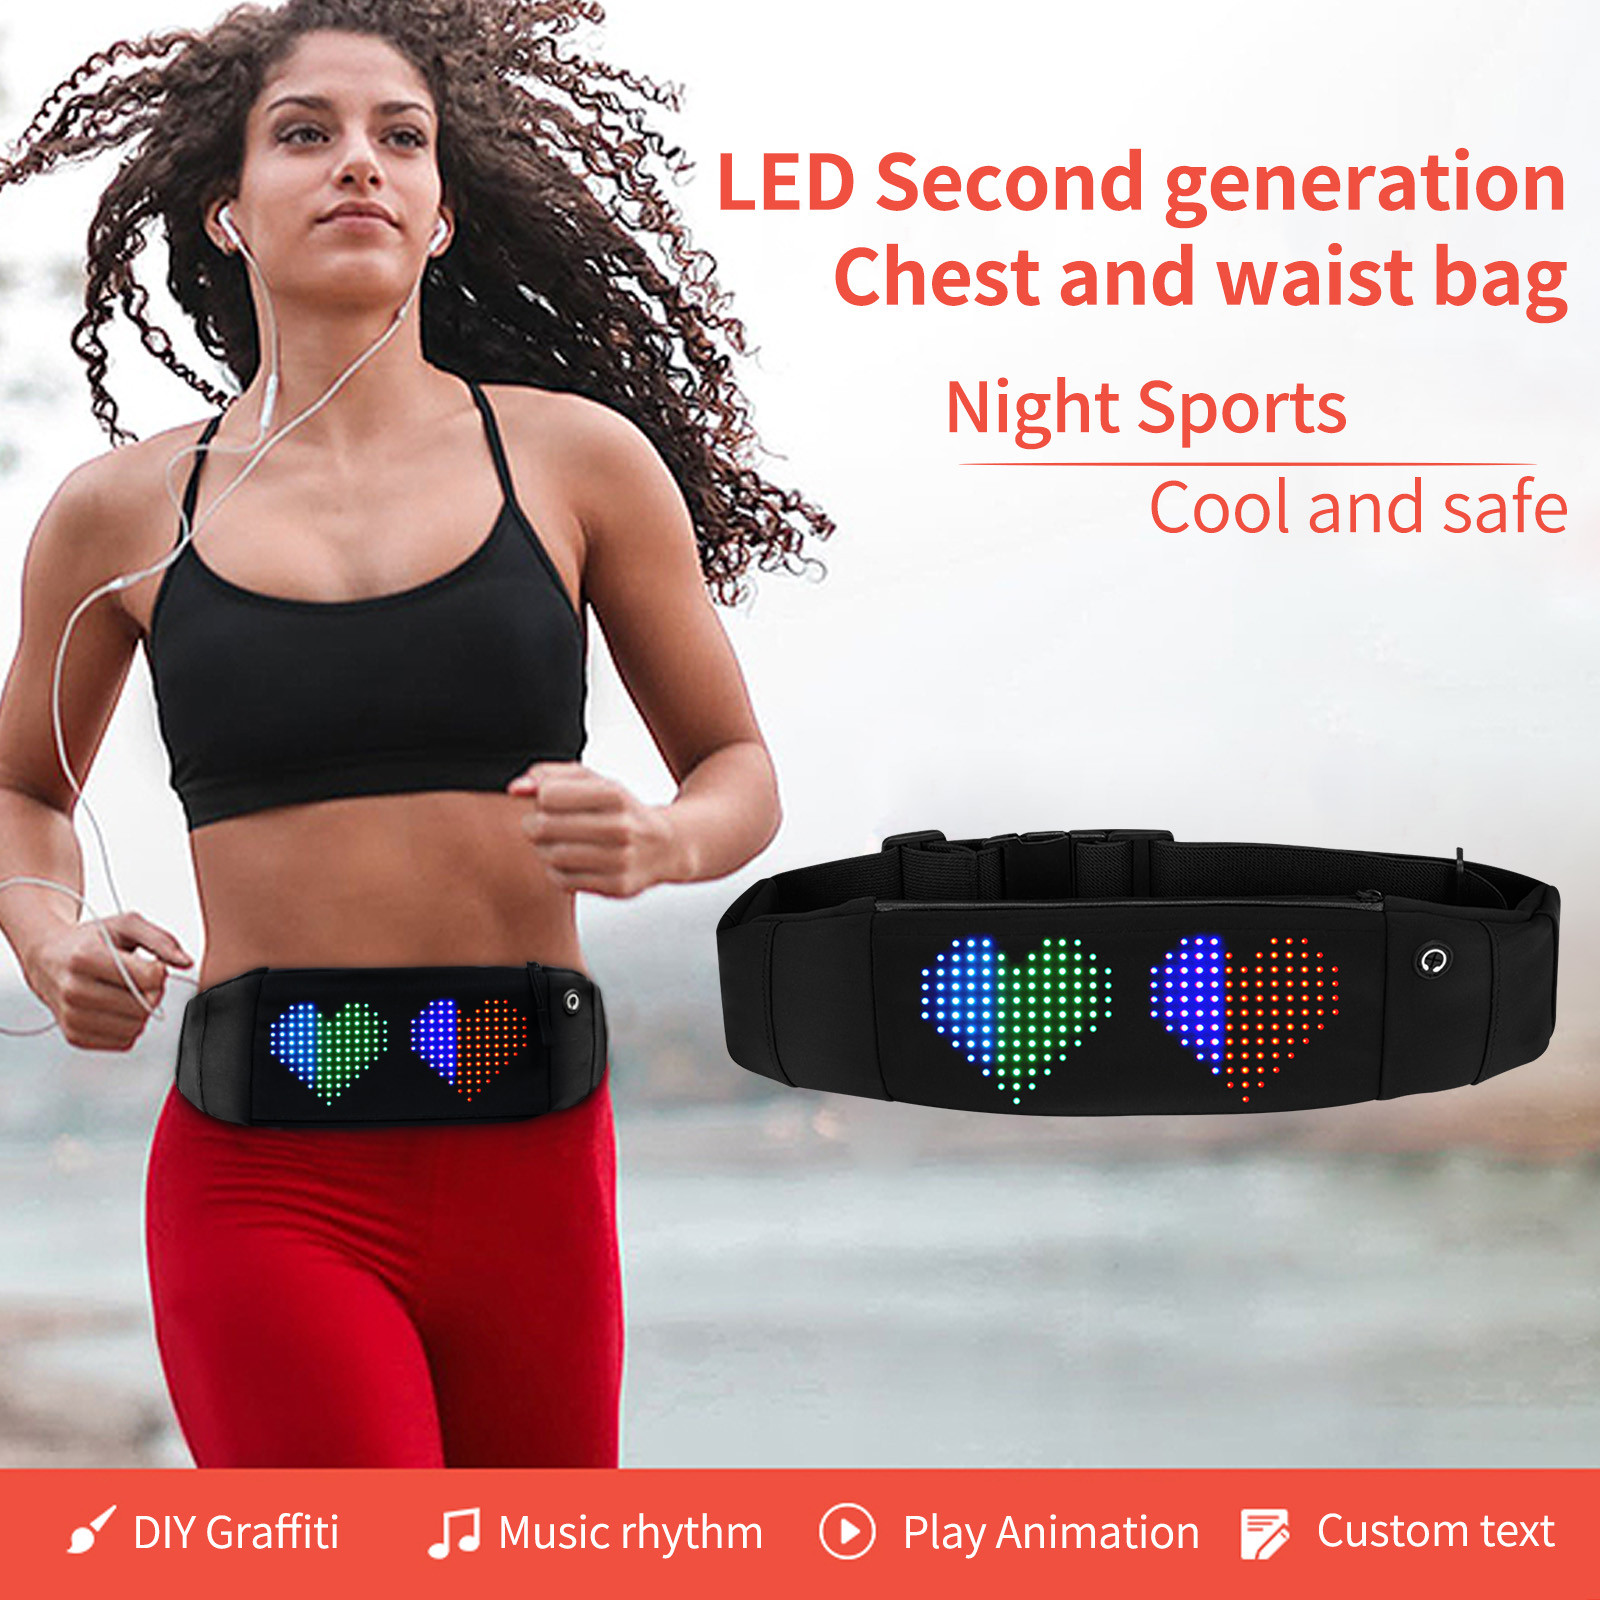 Chest Bag Waist Bag Nigh Running Cycling Jogging Gym Sports Bag LED Connection Blurtooth Outdoor Sports Belt Portable Durable